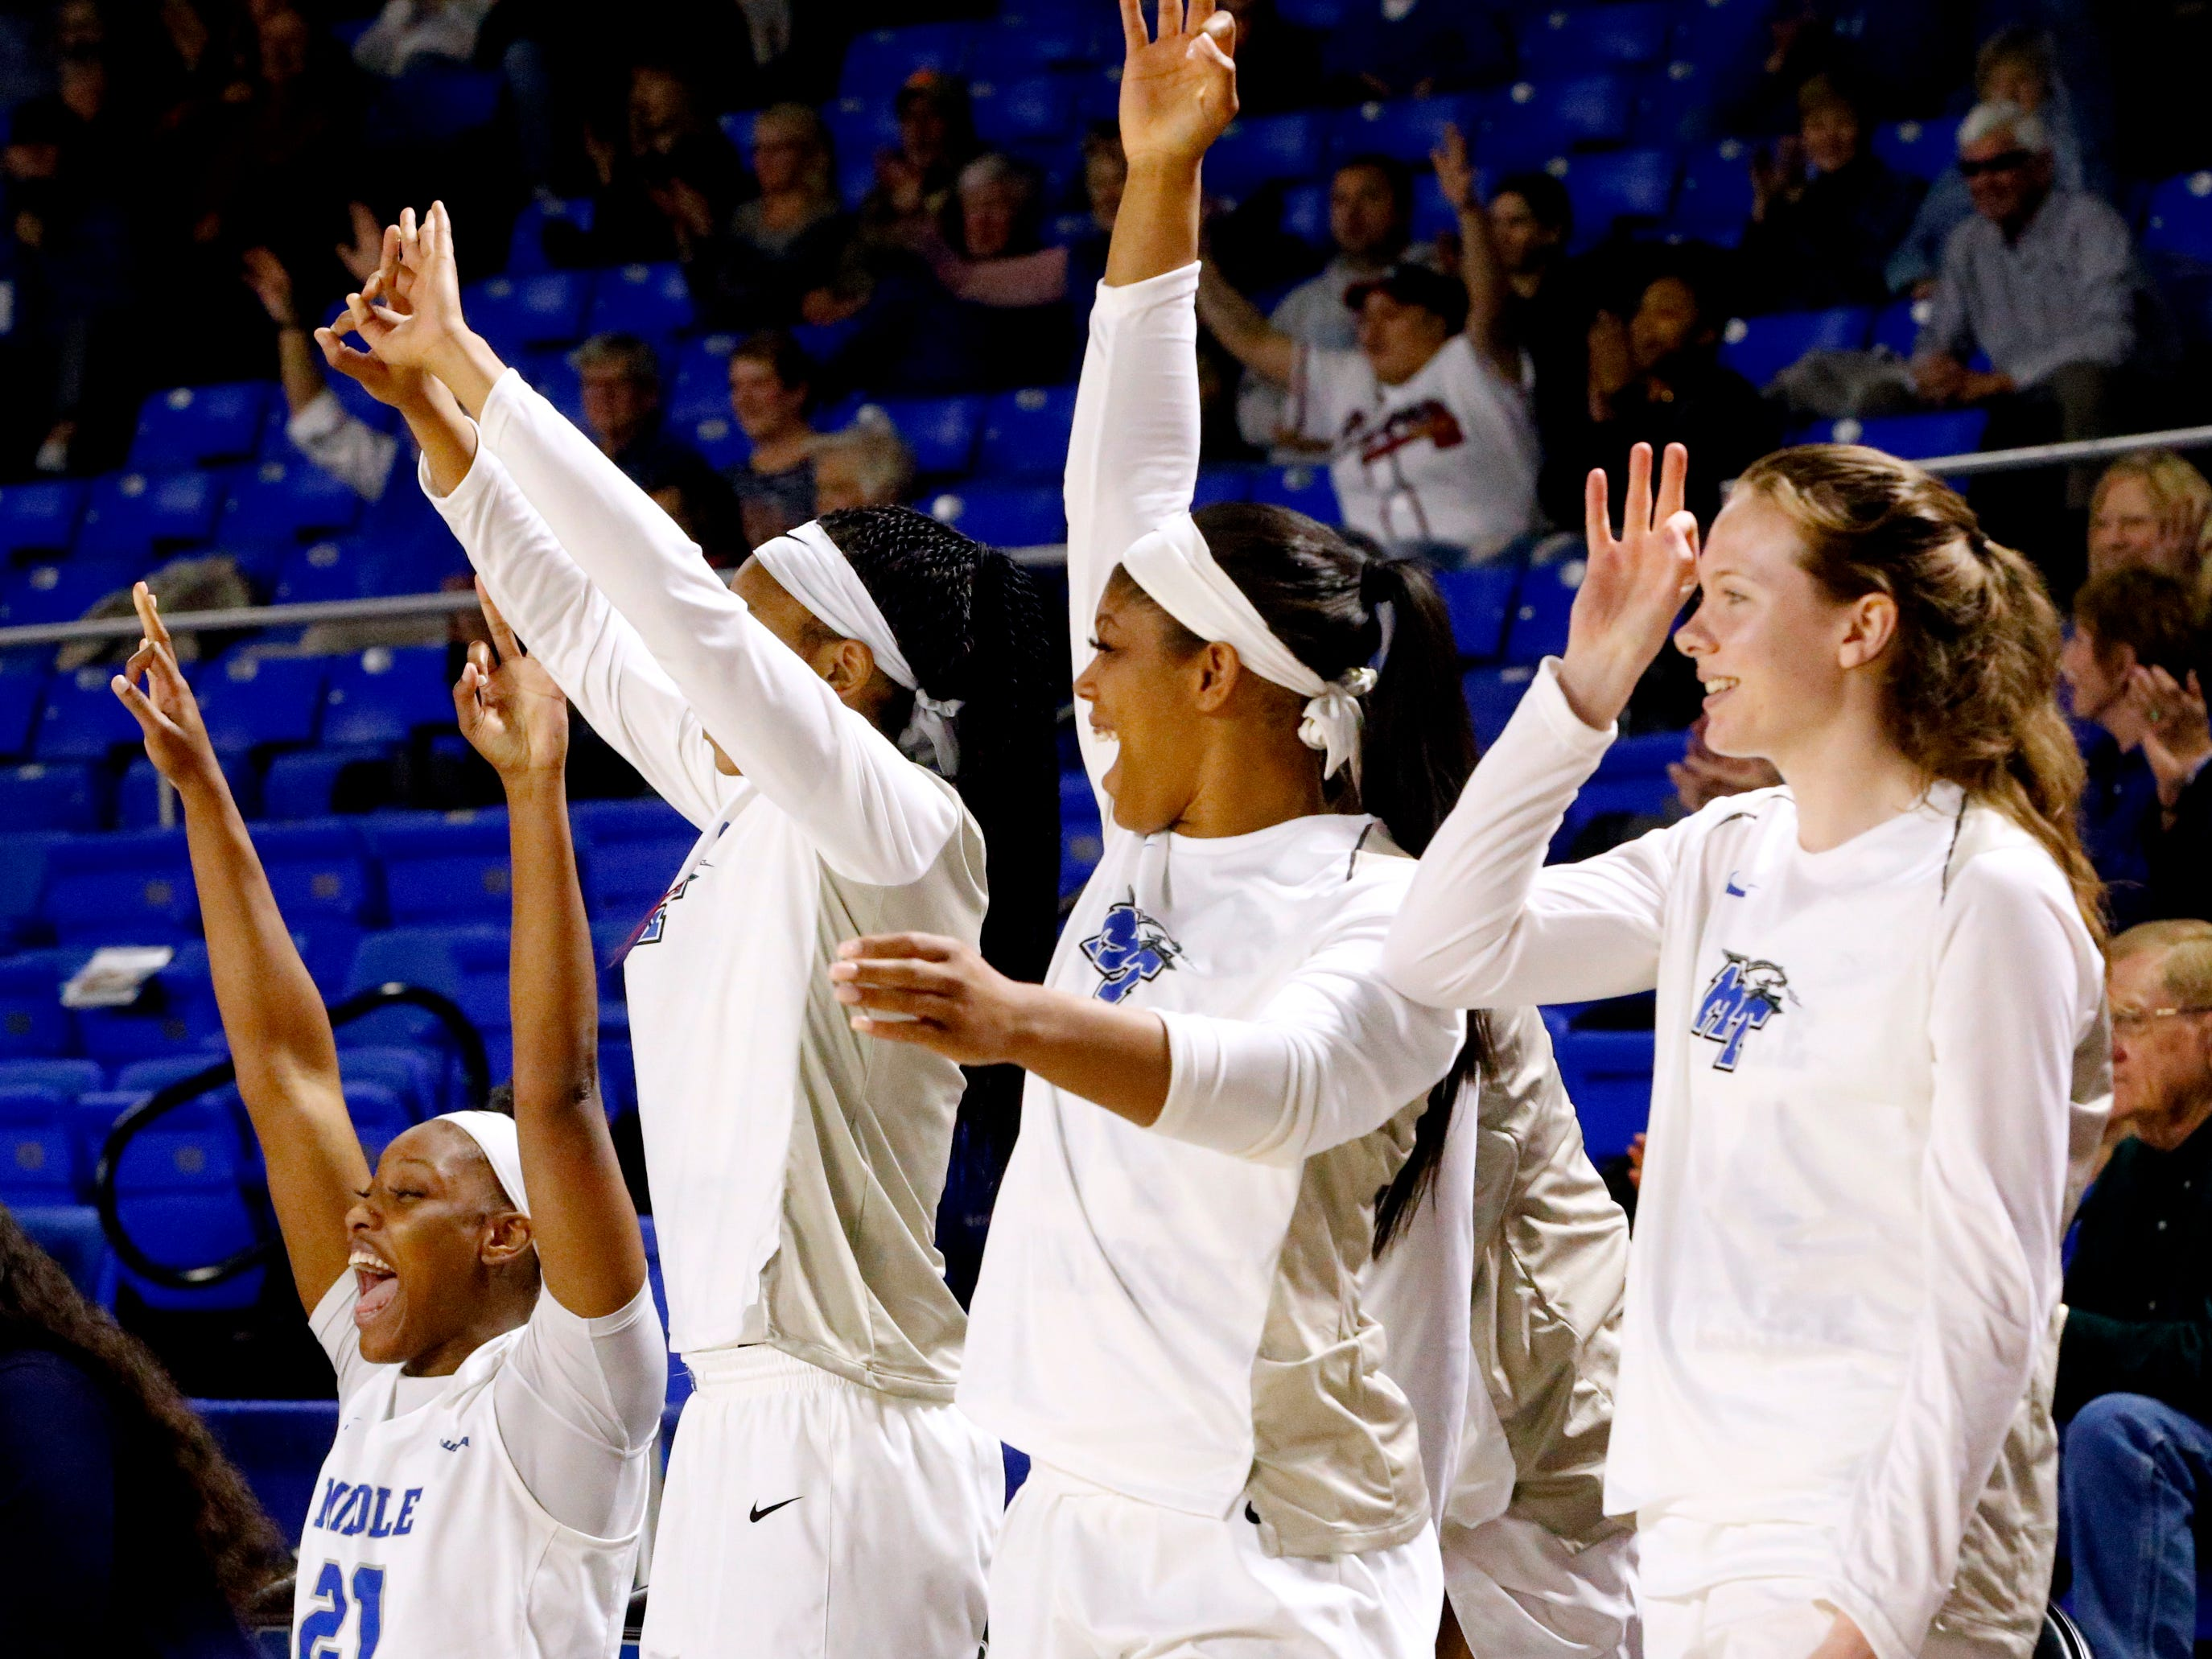 MTSU's bench celebrates as MTSU's guard Anna Jones (15) shoots a scores a three point basket on Saturday Jan. 26, 2019.